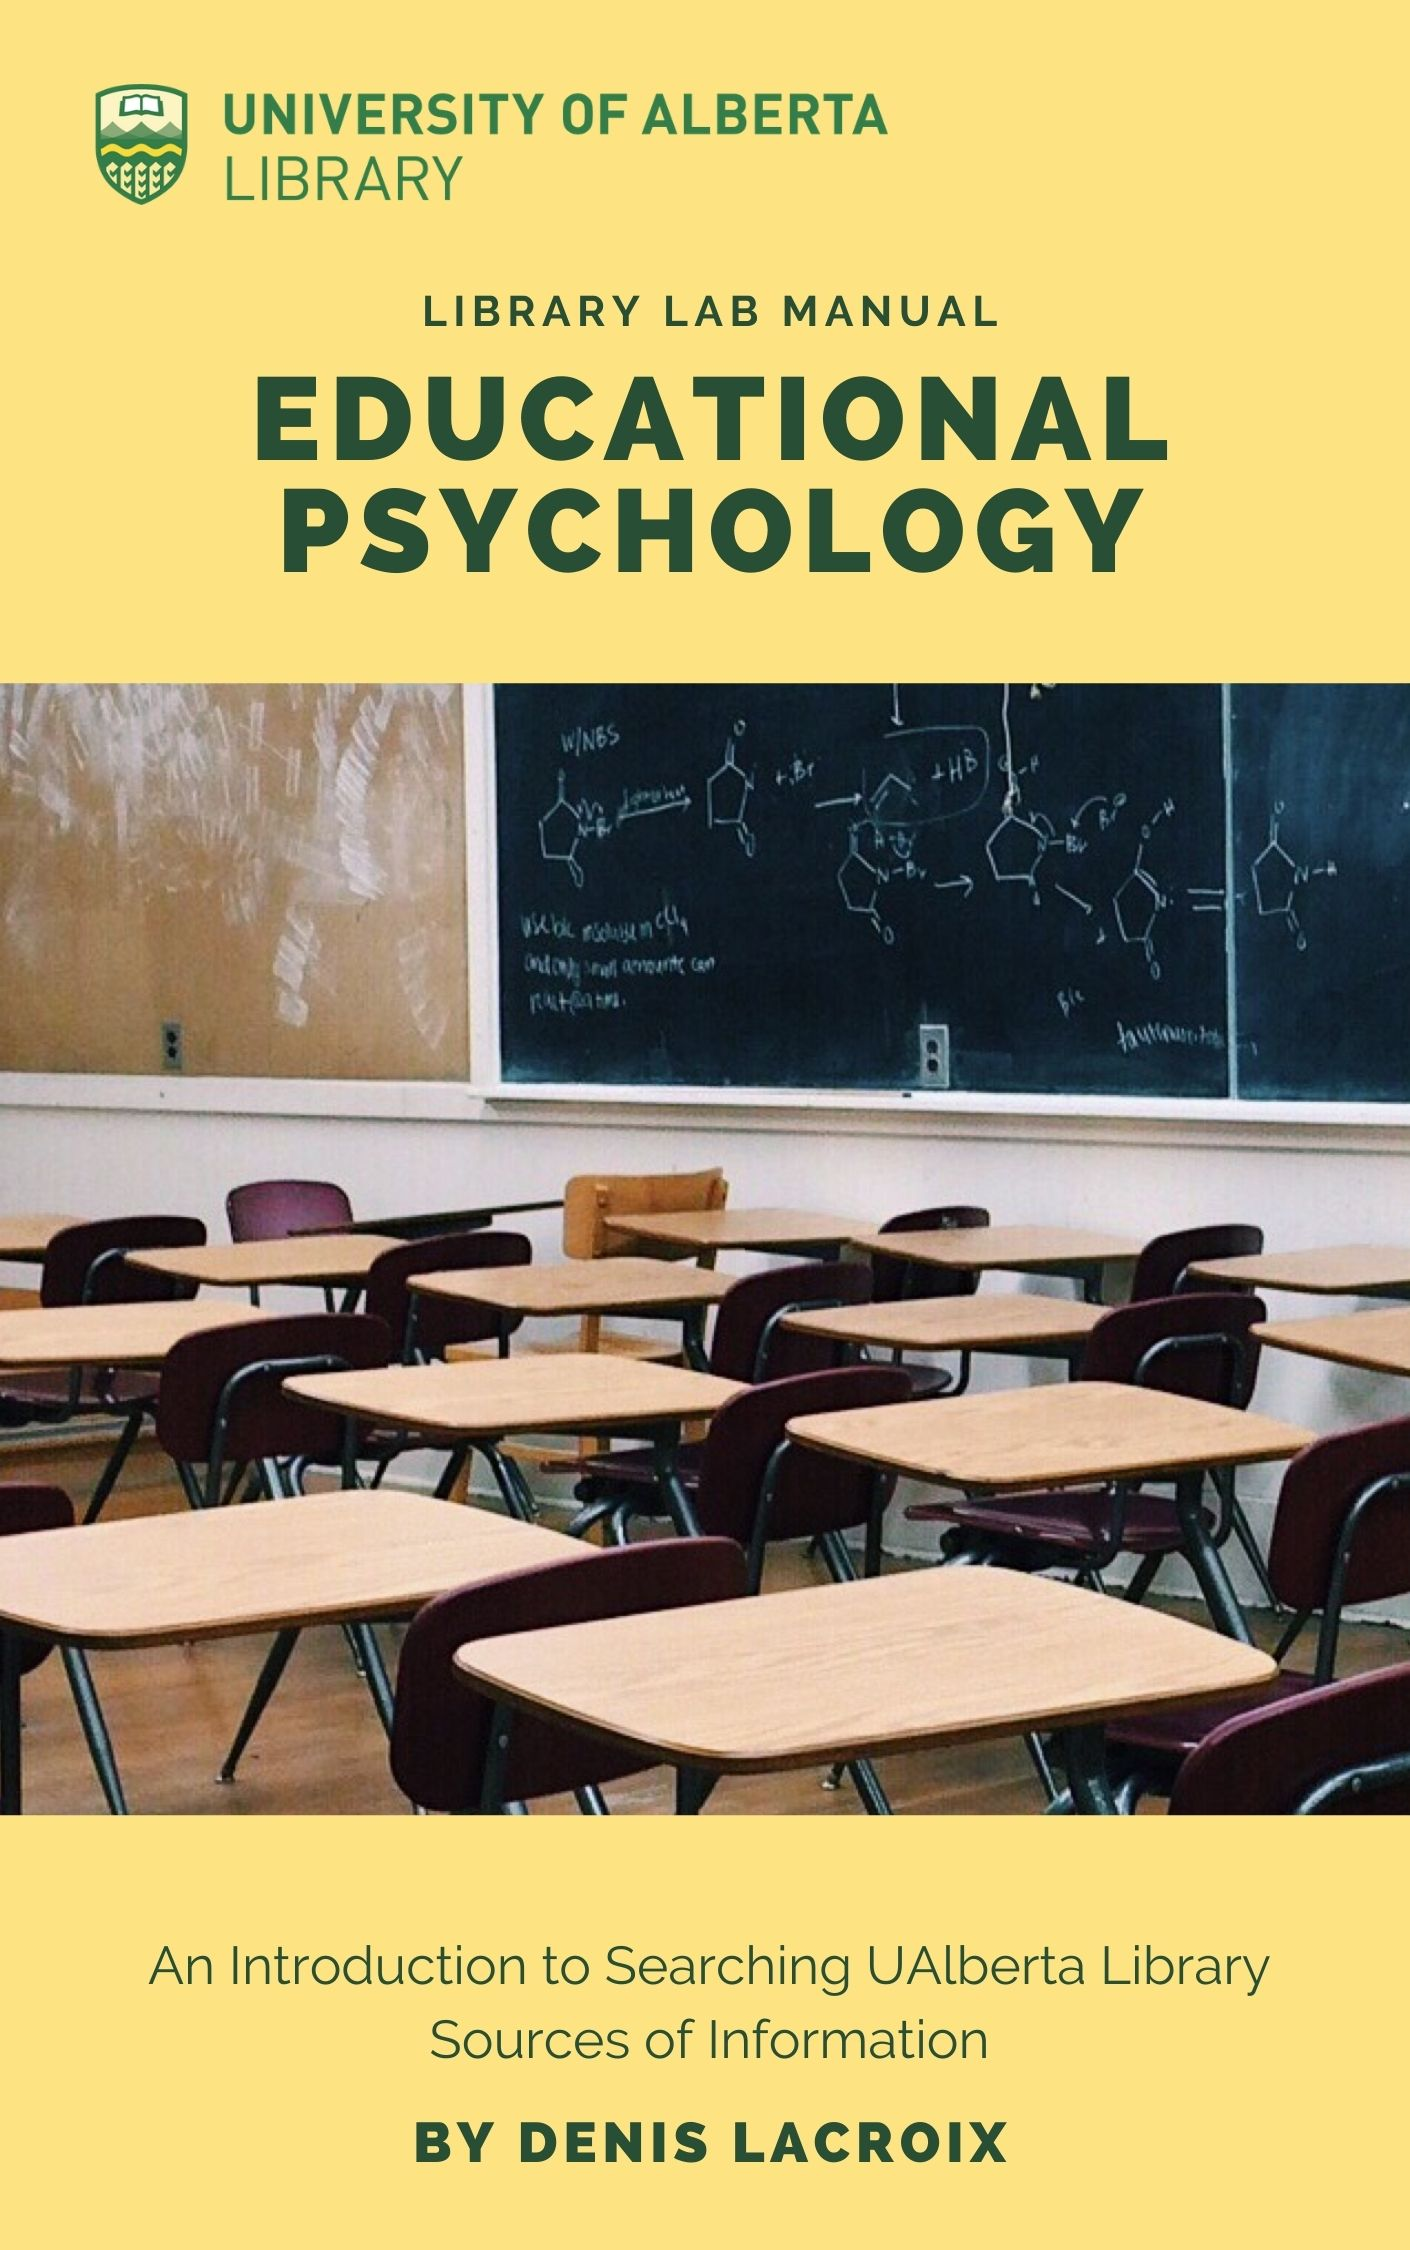 Cover image for Educational Psychology Library Lab Manual